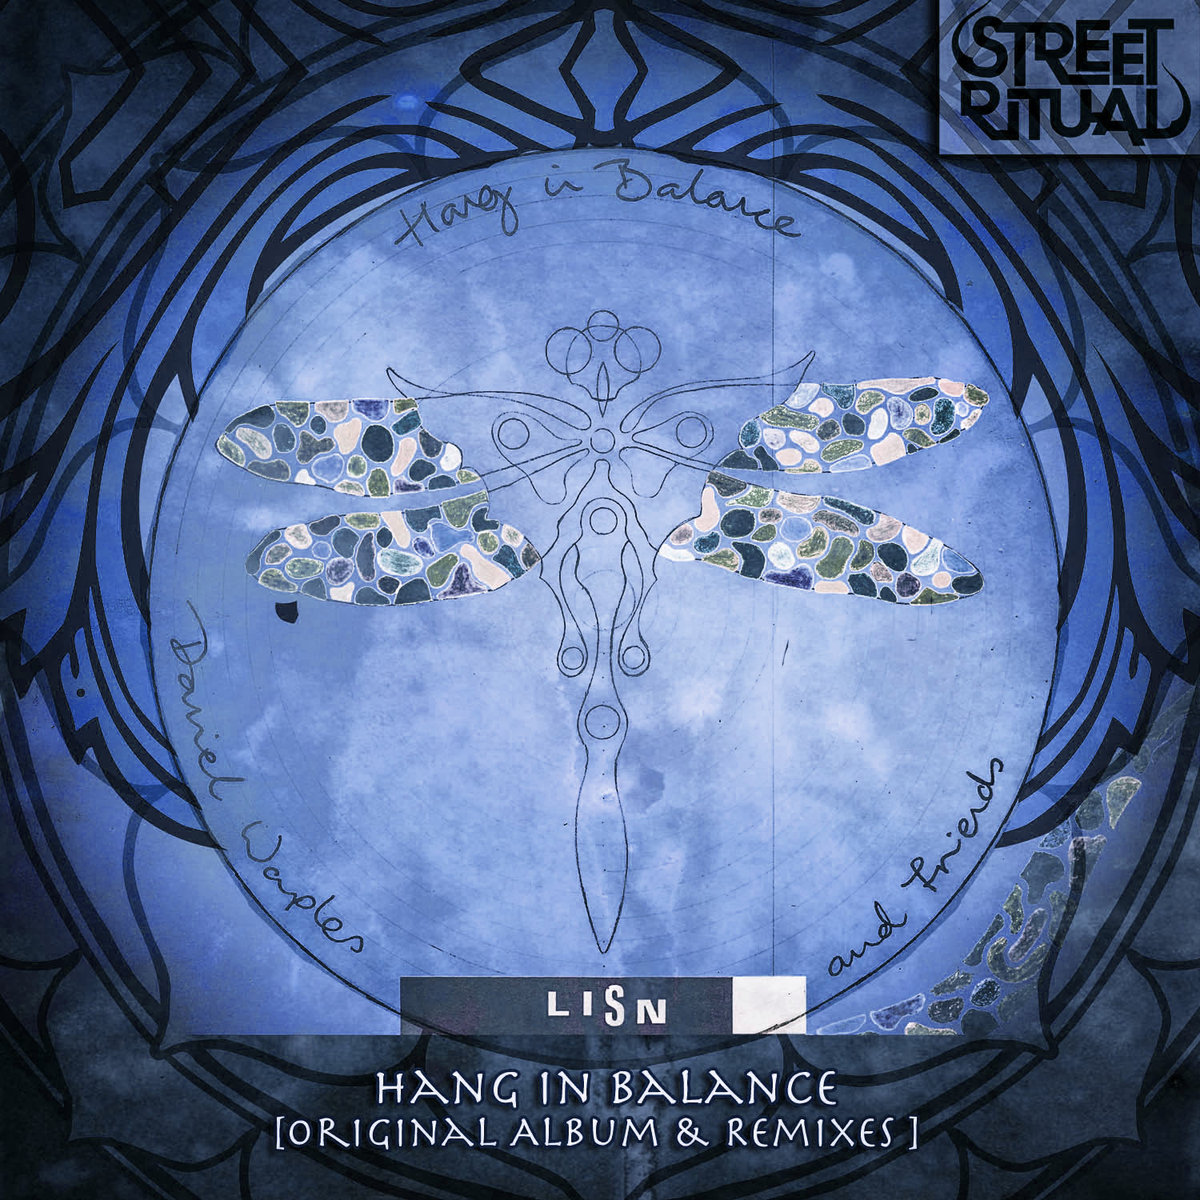 Hang in Balance - Bello Revive (Animatronix Remix) @ 'Lisn (Remixes & Originals)' album (bass, daniel waples)